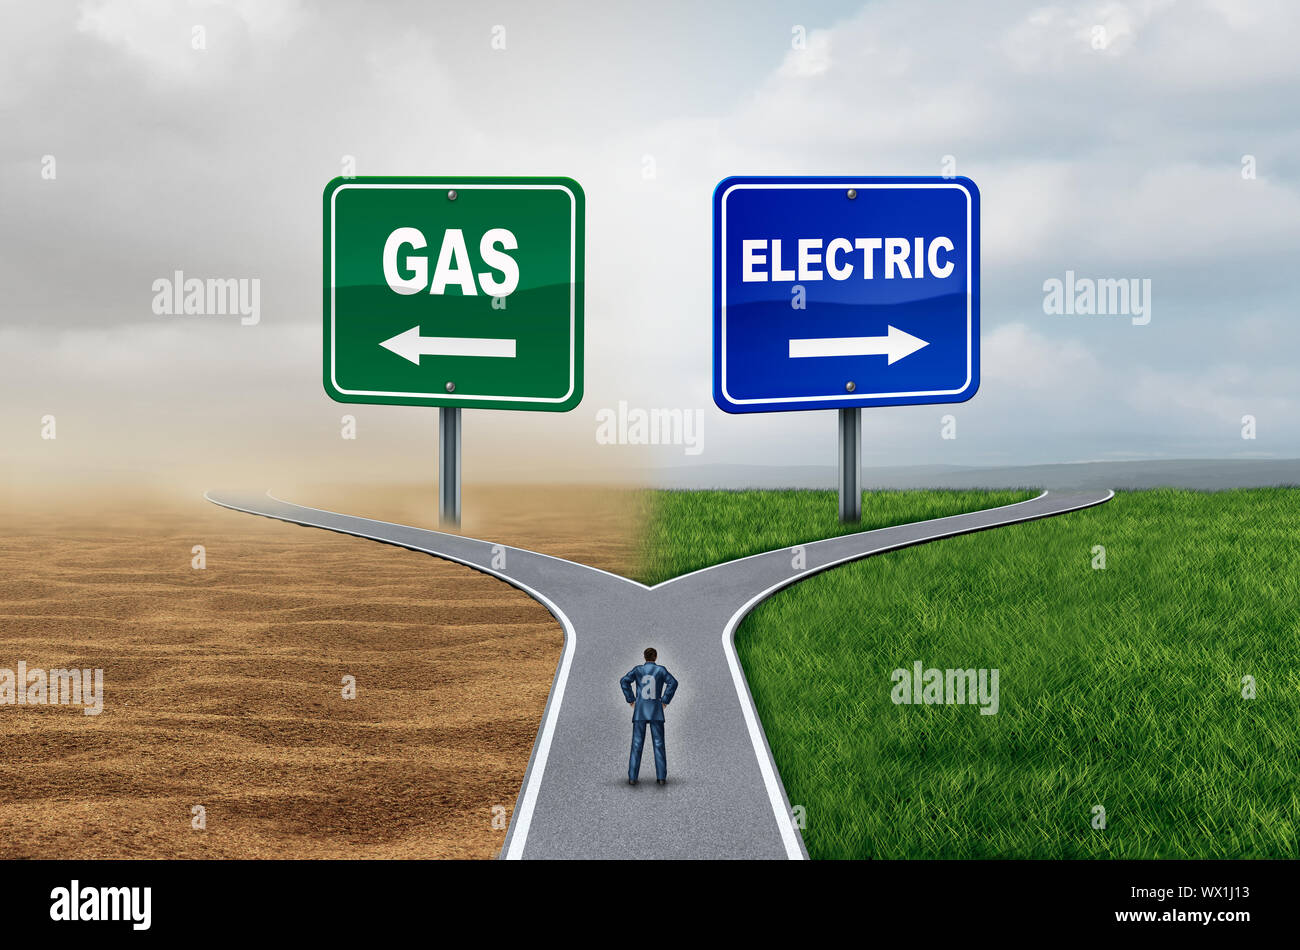 Gas vs electric energy transportation fuel concept as gasoline versus battery technology with 3D illustration elements. Stock Photo